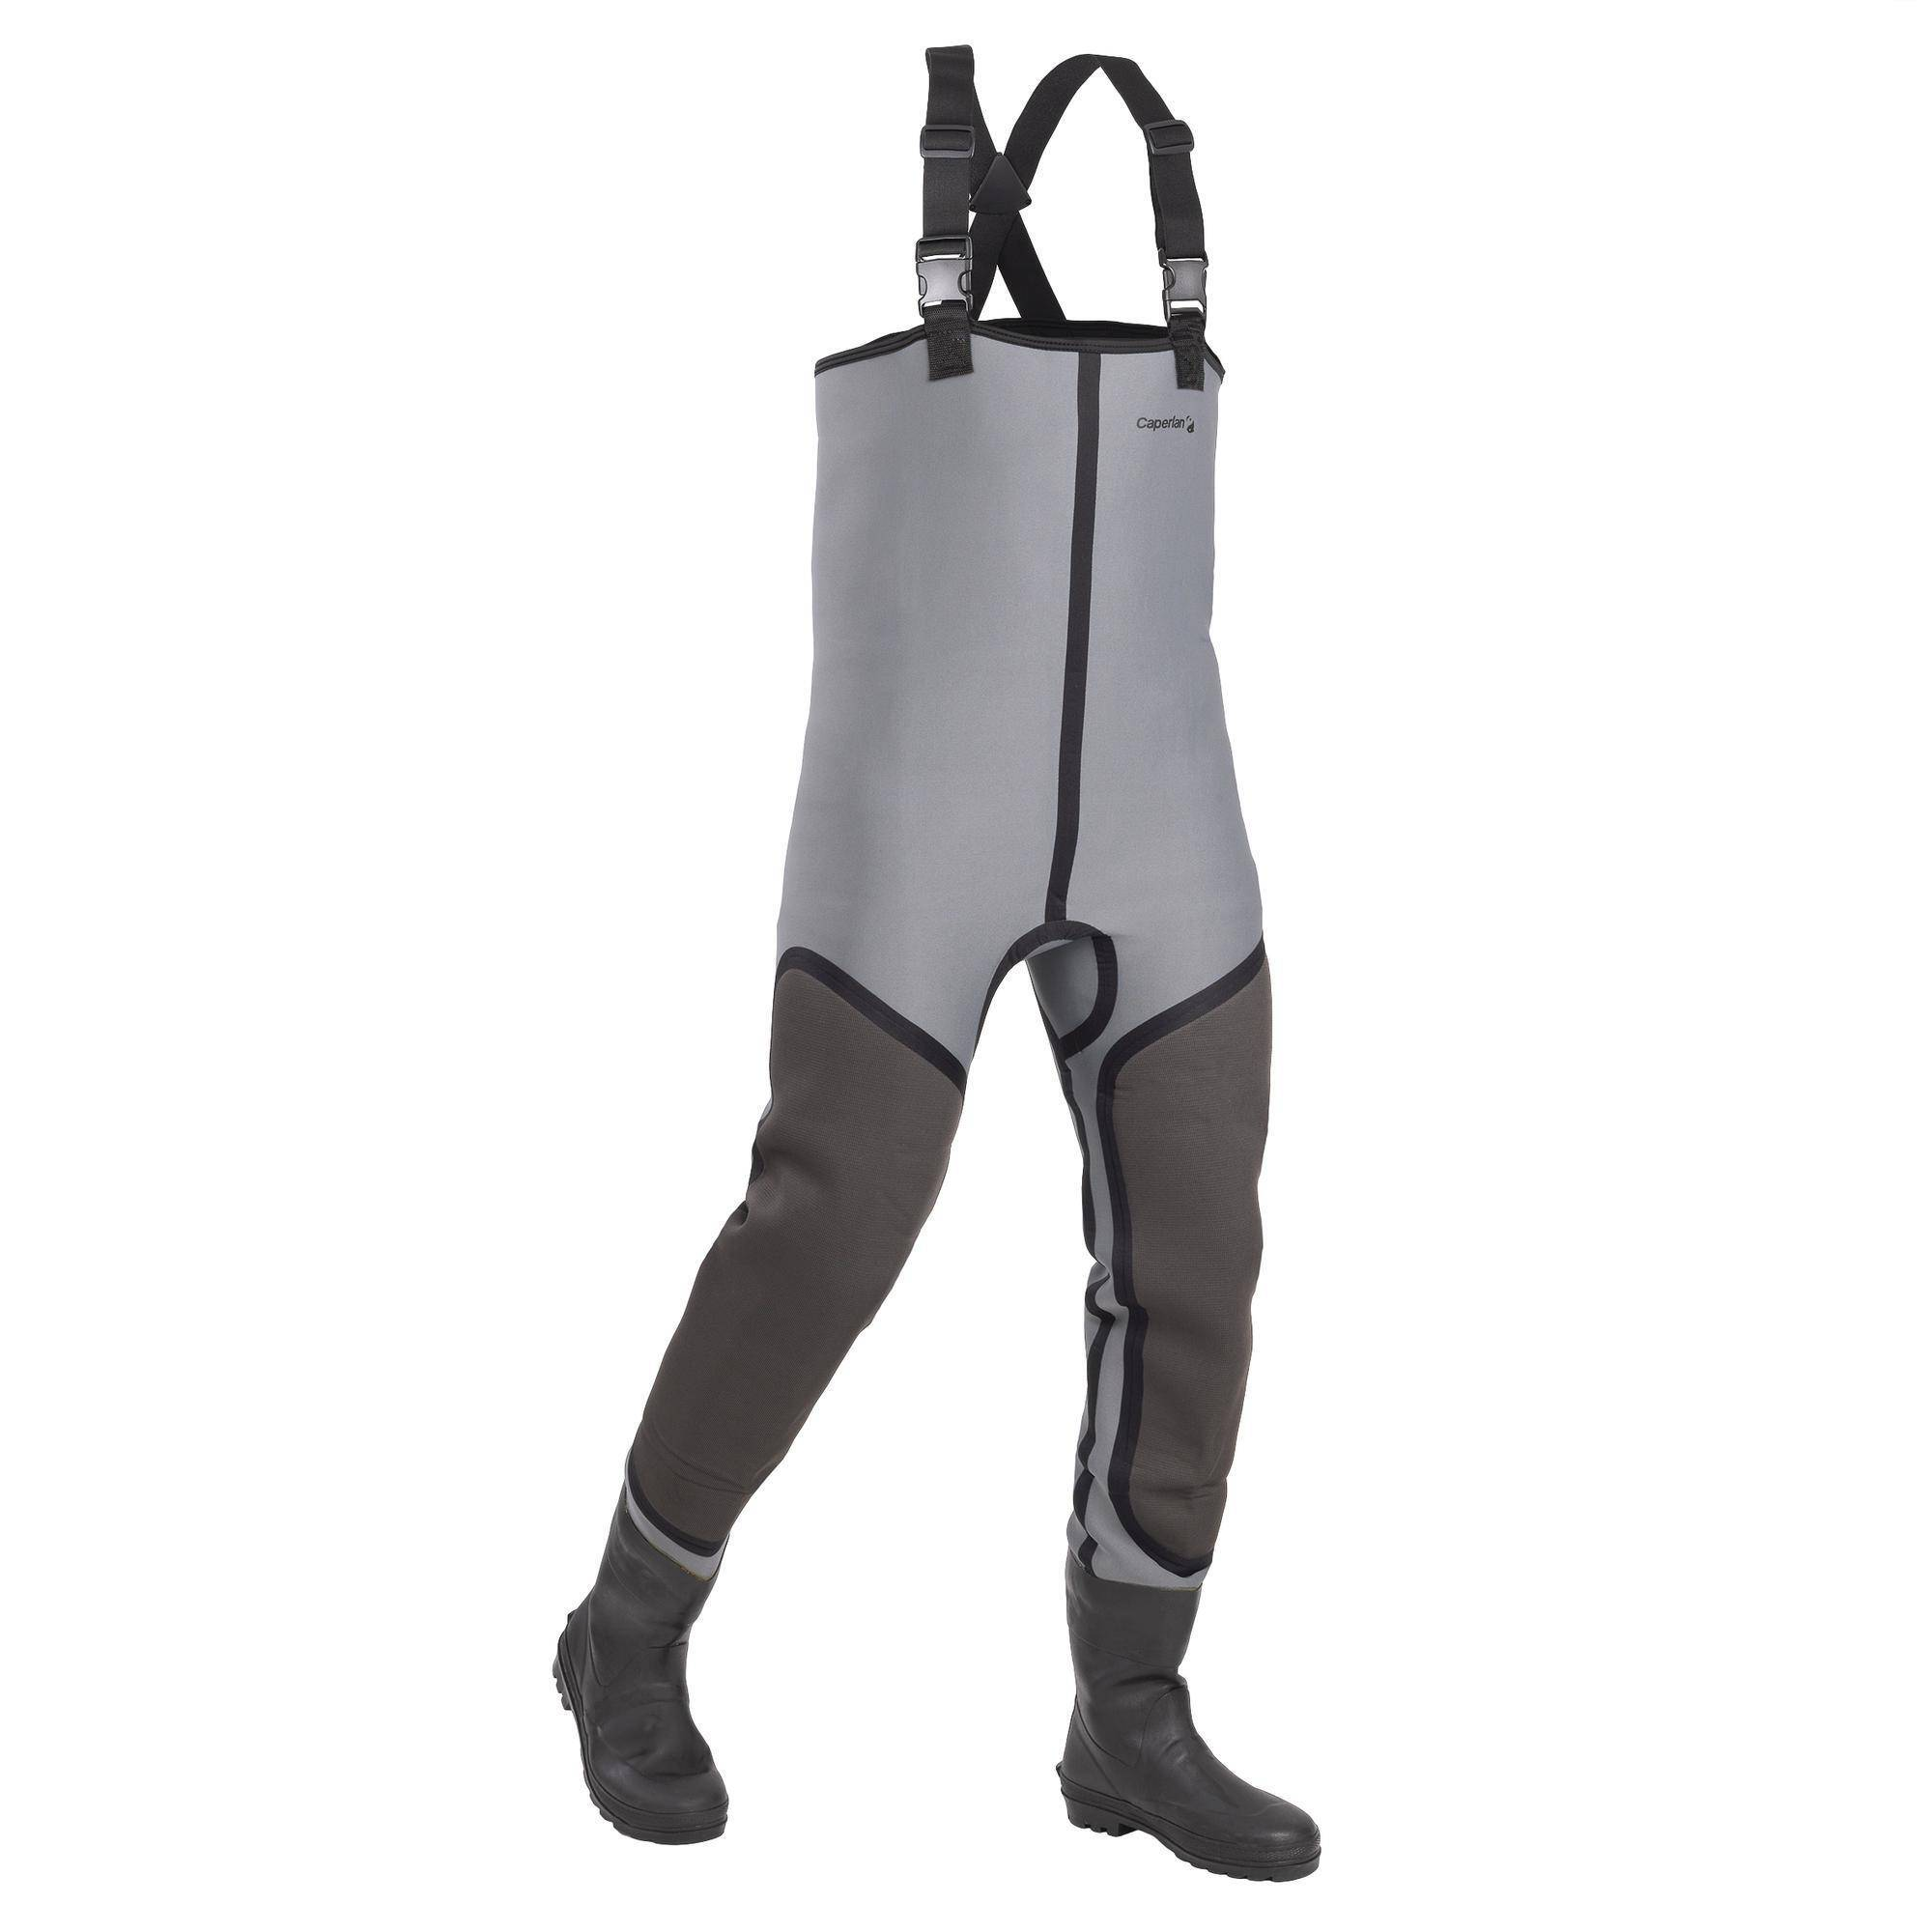 CAPERLAN Waders Pêche WDS-3 Thermo - CAPERLAN - 46/47